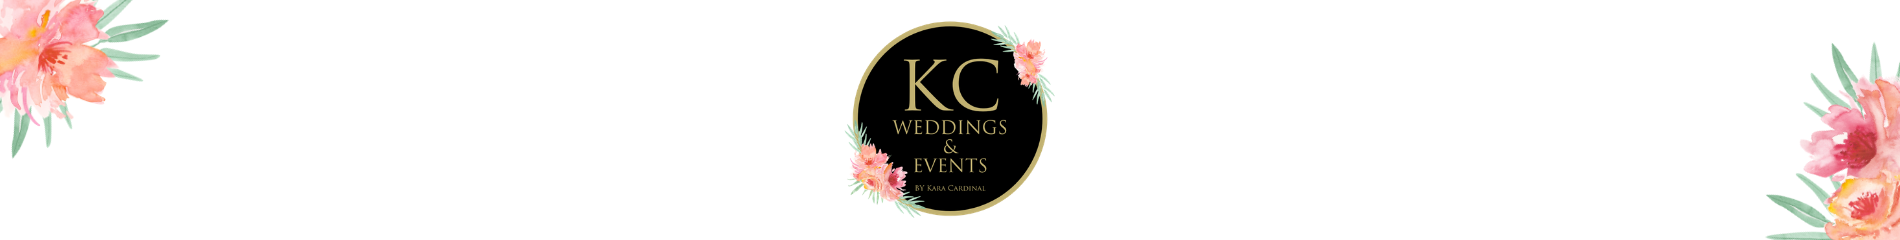 KC Weddings & Events